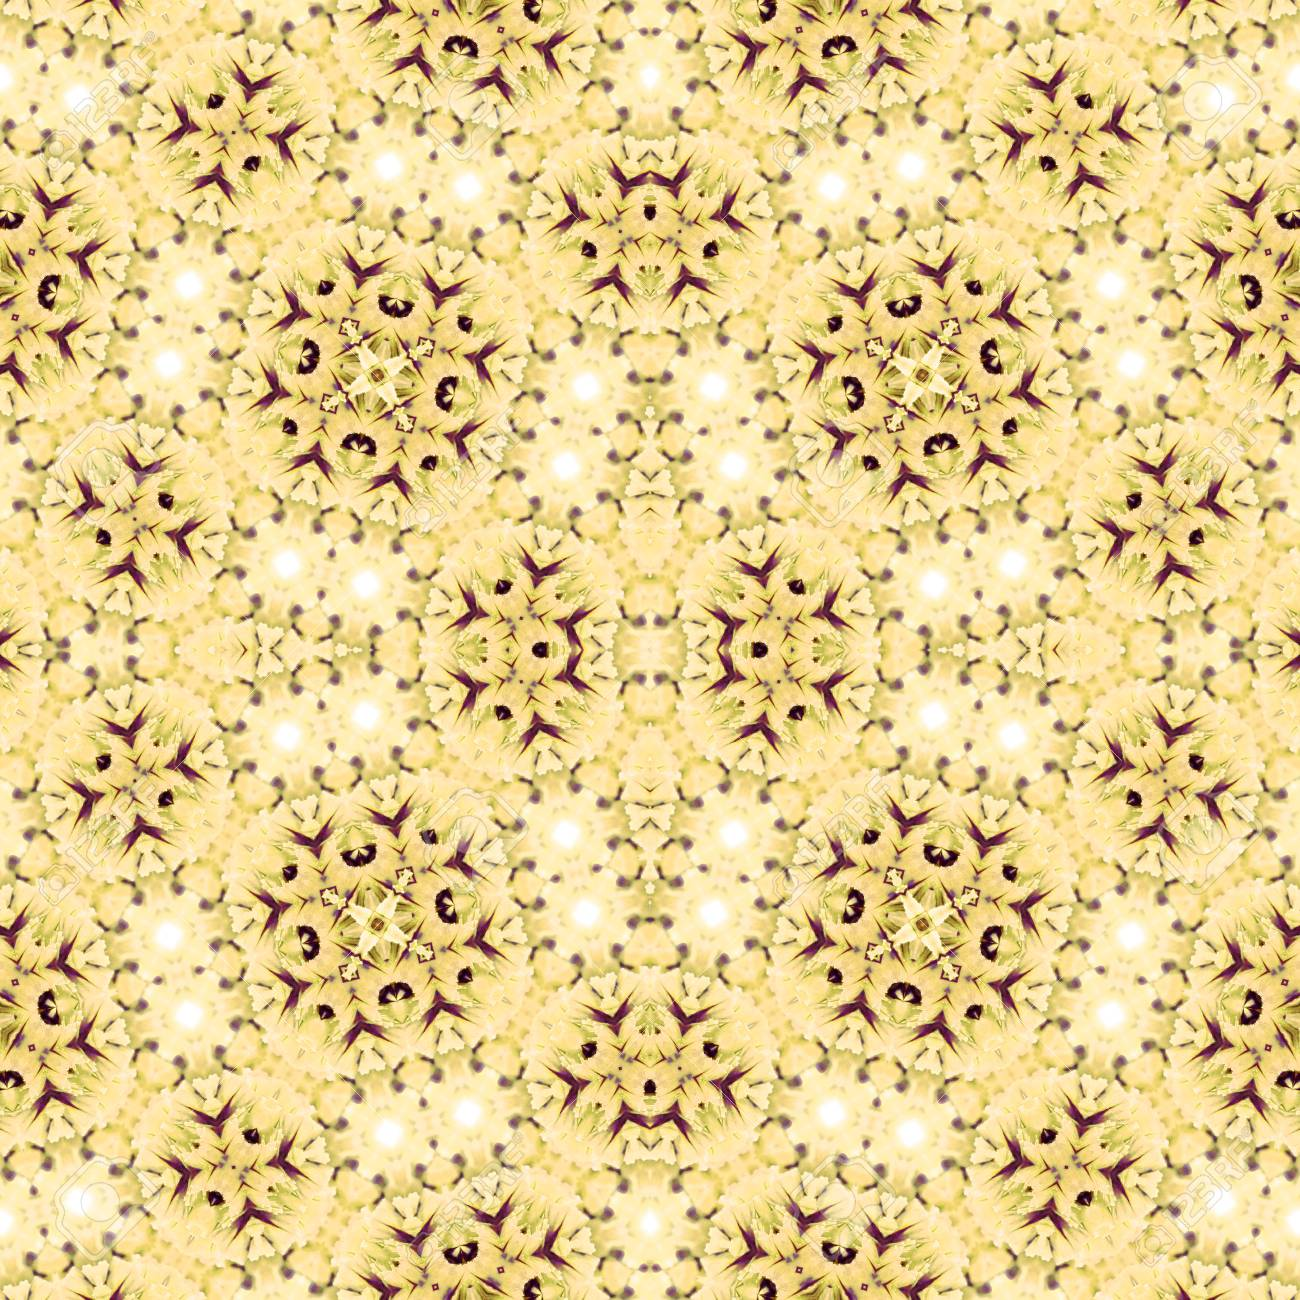 Abstract flowers seamless pattern background. Kaleidoscope from flowers. Hydraulic tile design. - 104075097